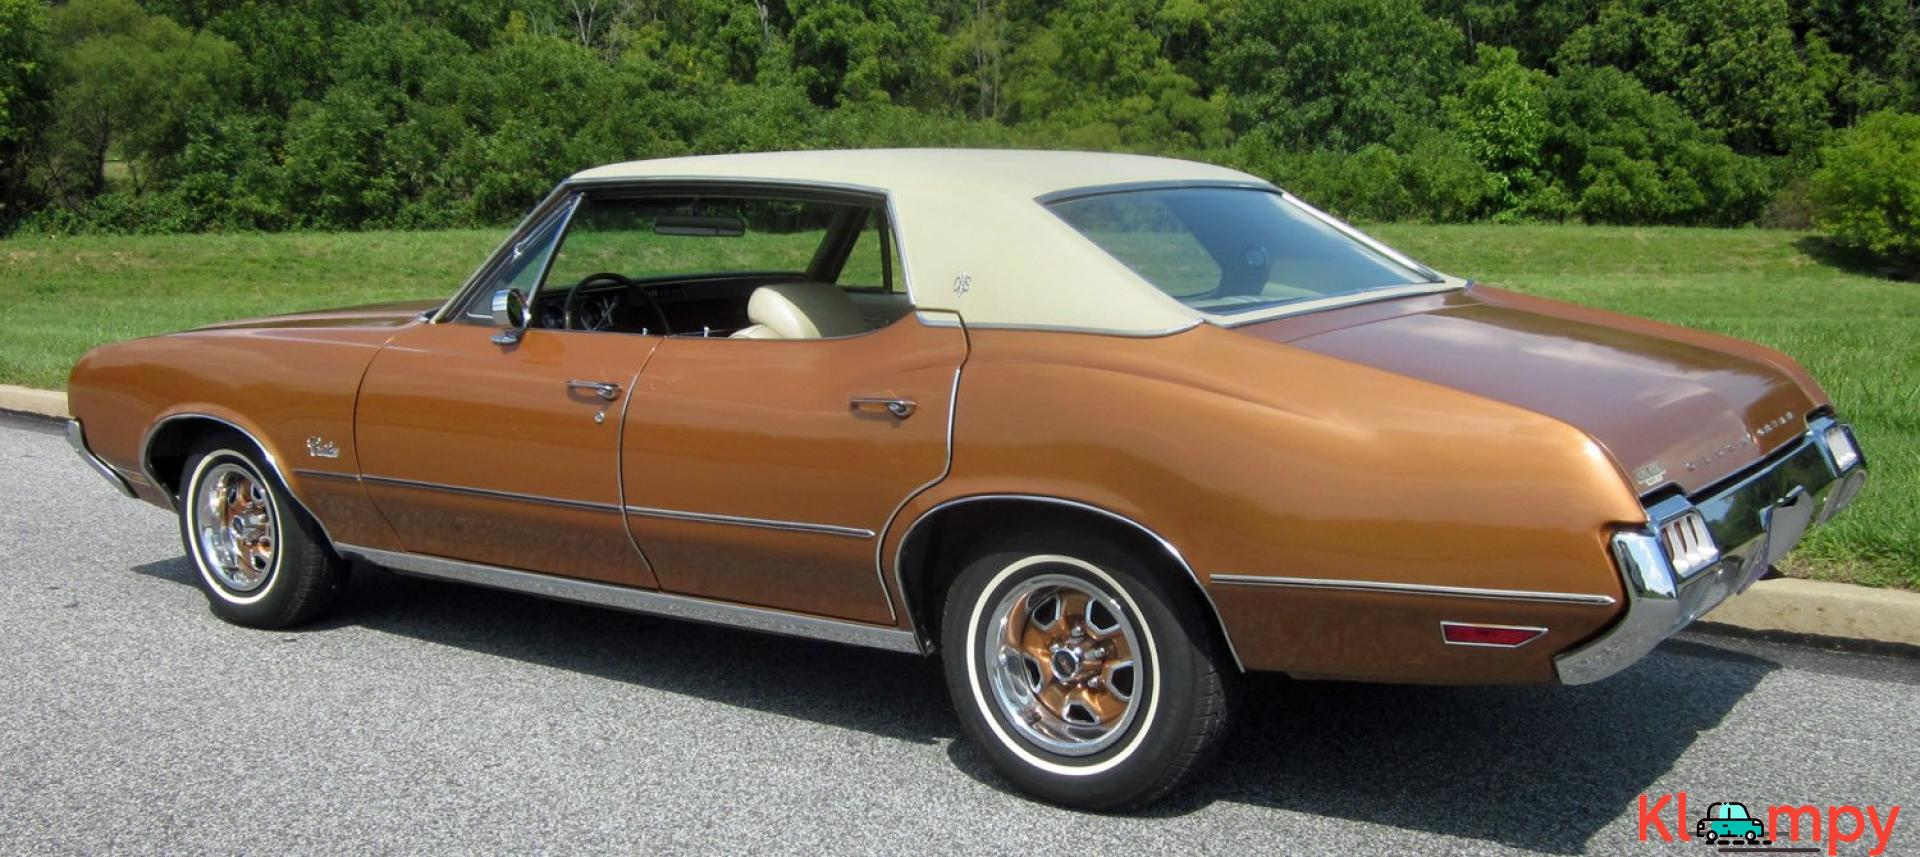 1972 Oldsmobile Cutlass Sport Sedan V8 - 9/20